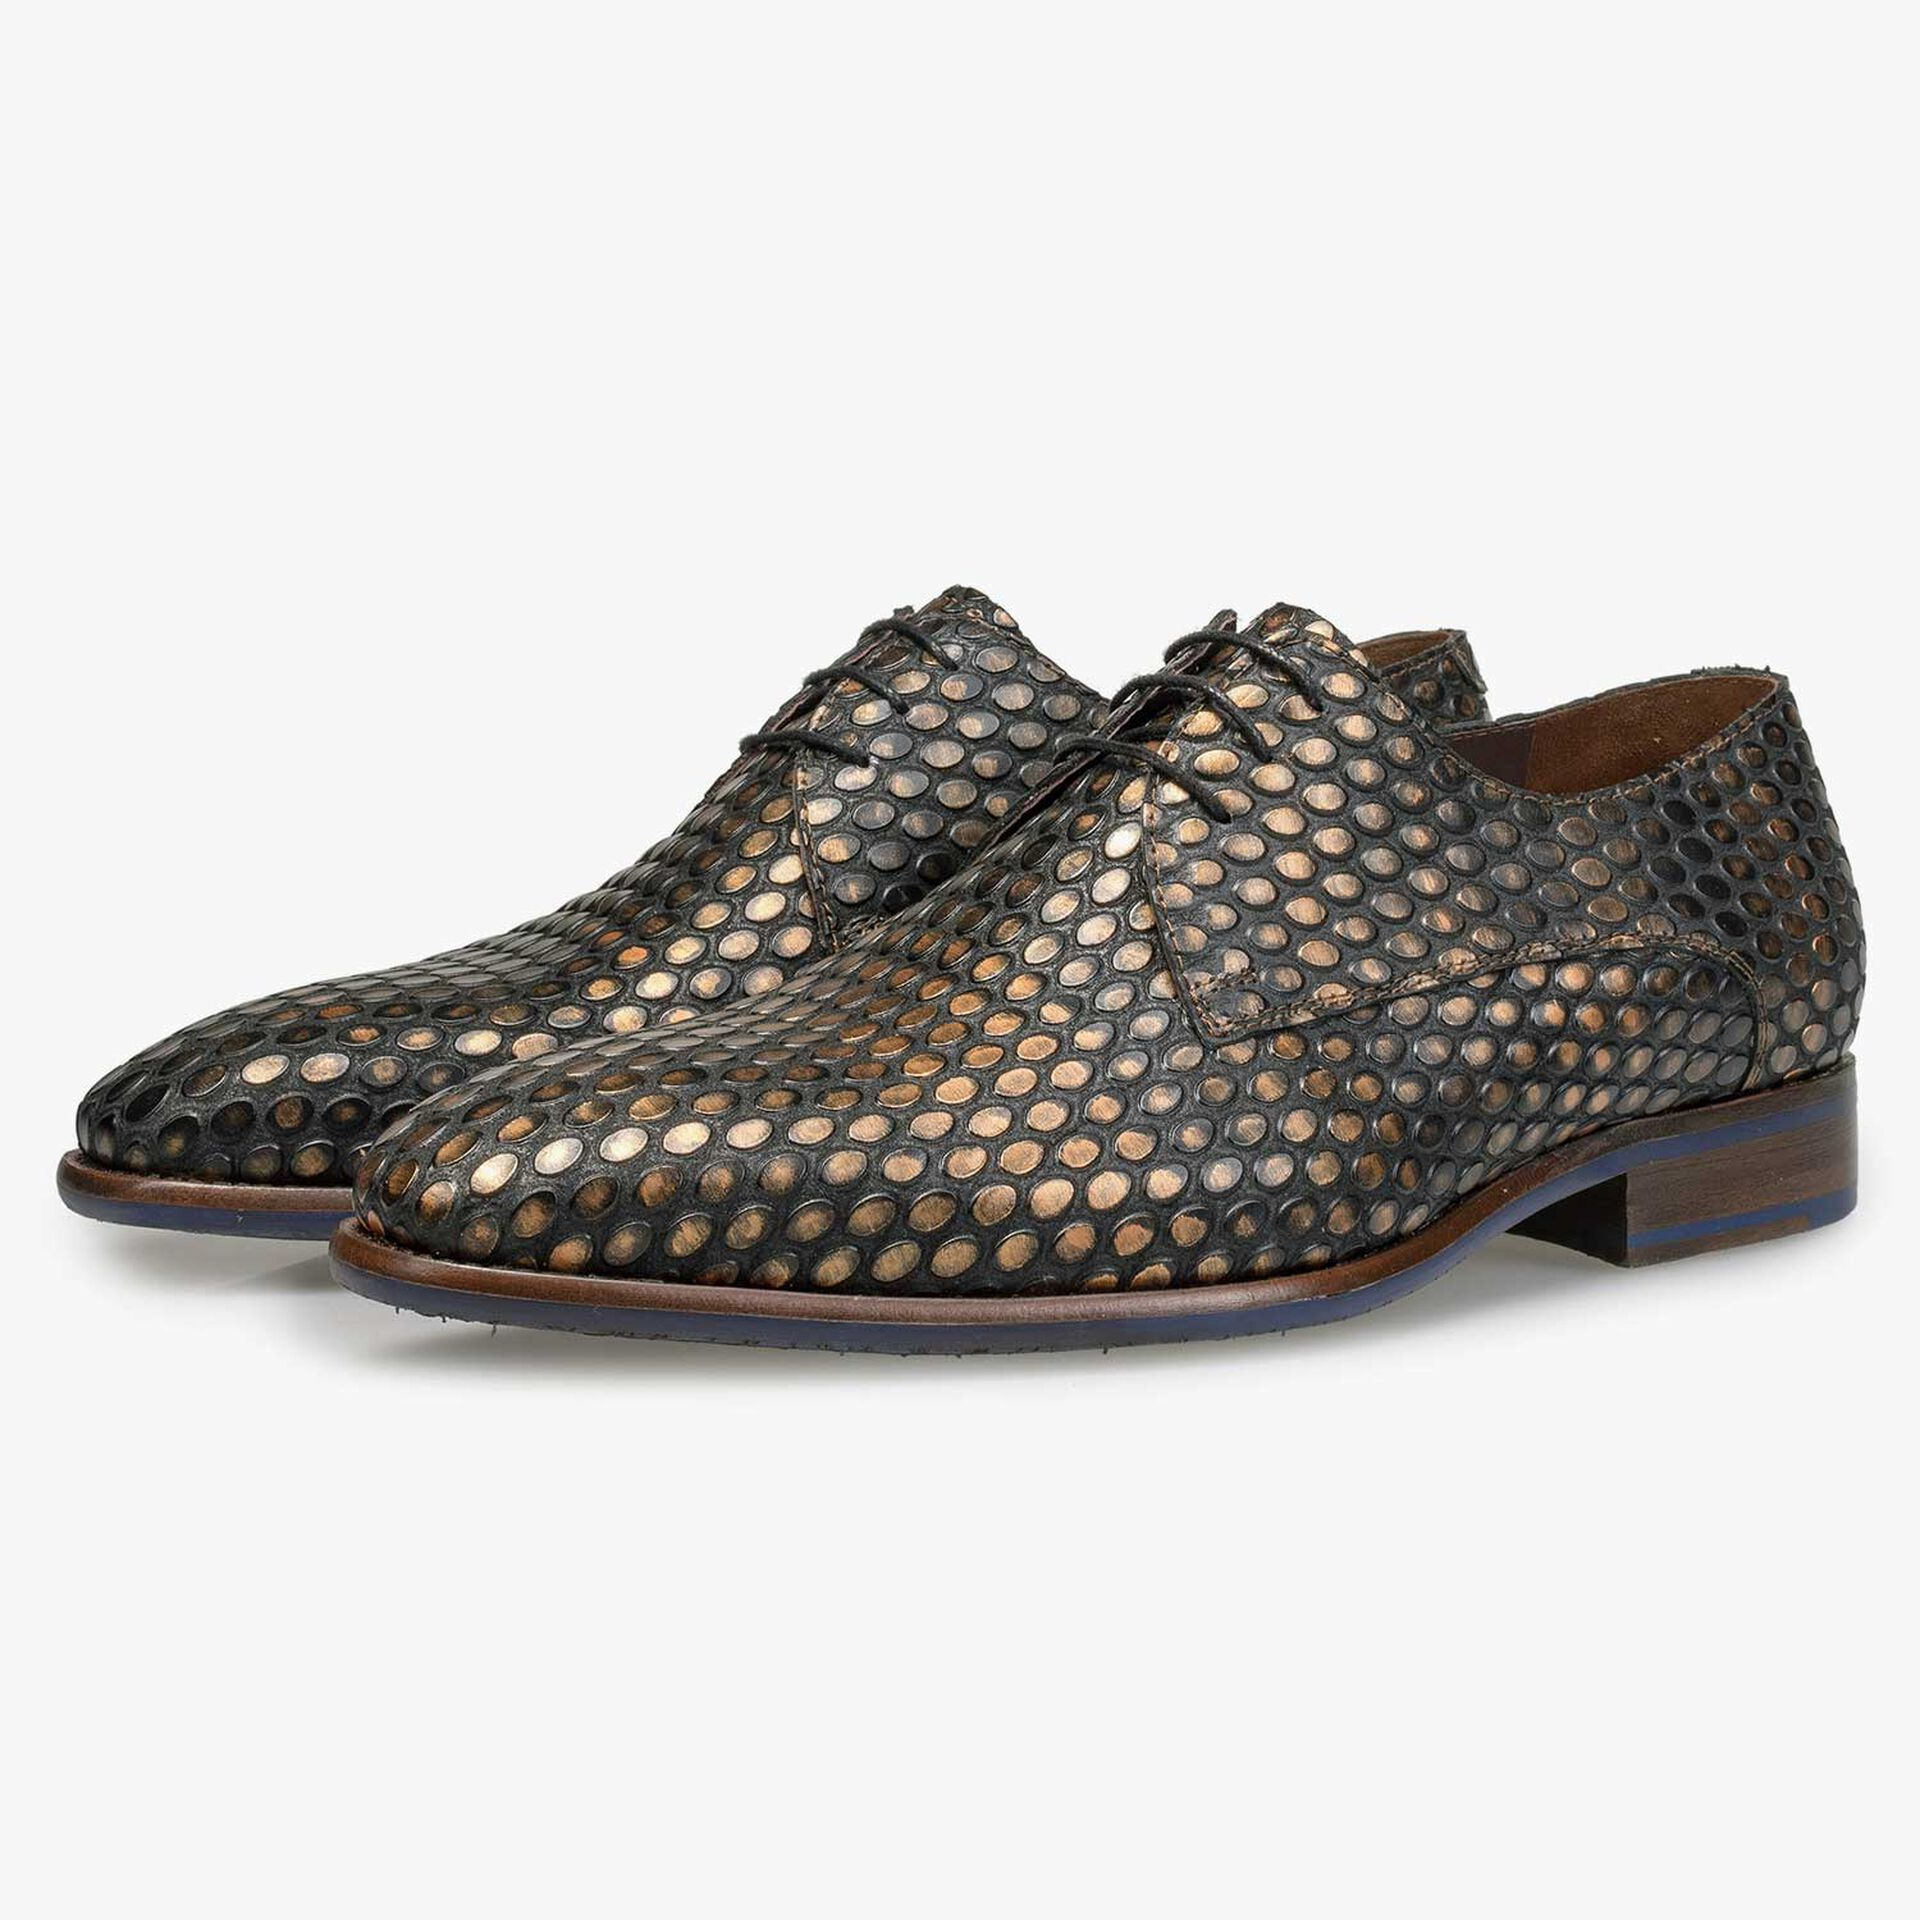 Bronze-coloured calf's leather lace shoe with structural print